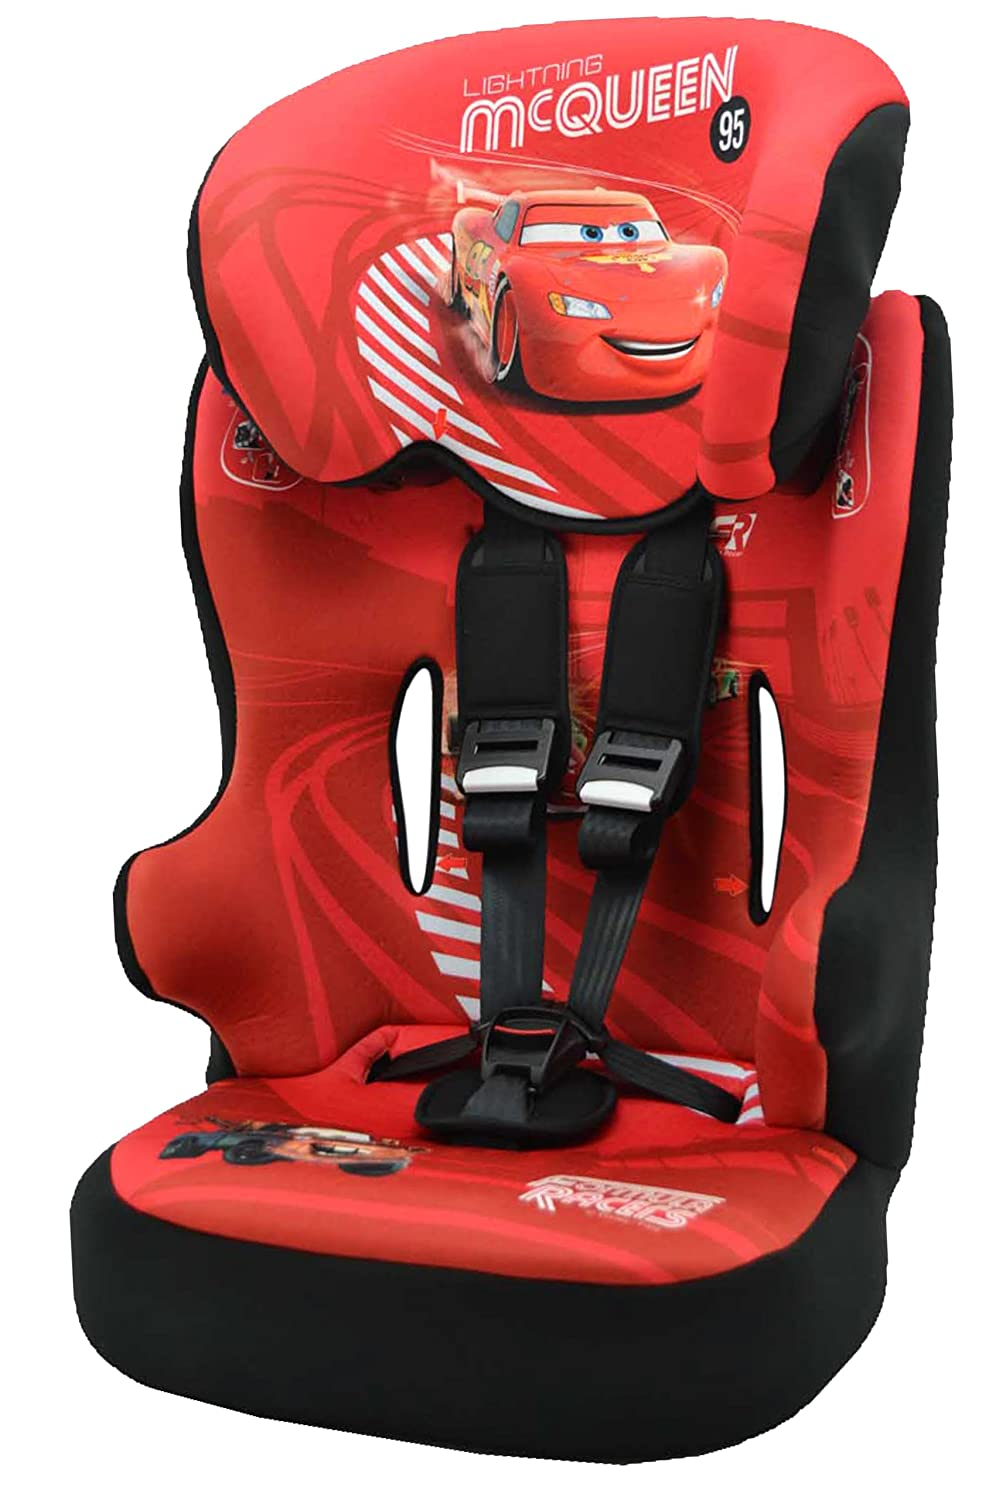 Disney Racer SP E102 120 713 Childrens Car Seat 9 36 Kg Cars Lightning McQueen KIDS IM SITZ Amazoncouk Baby